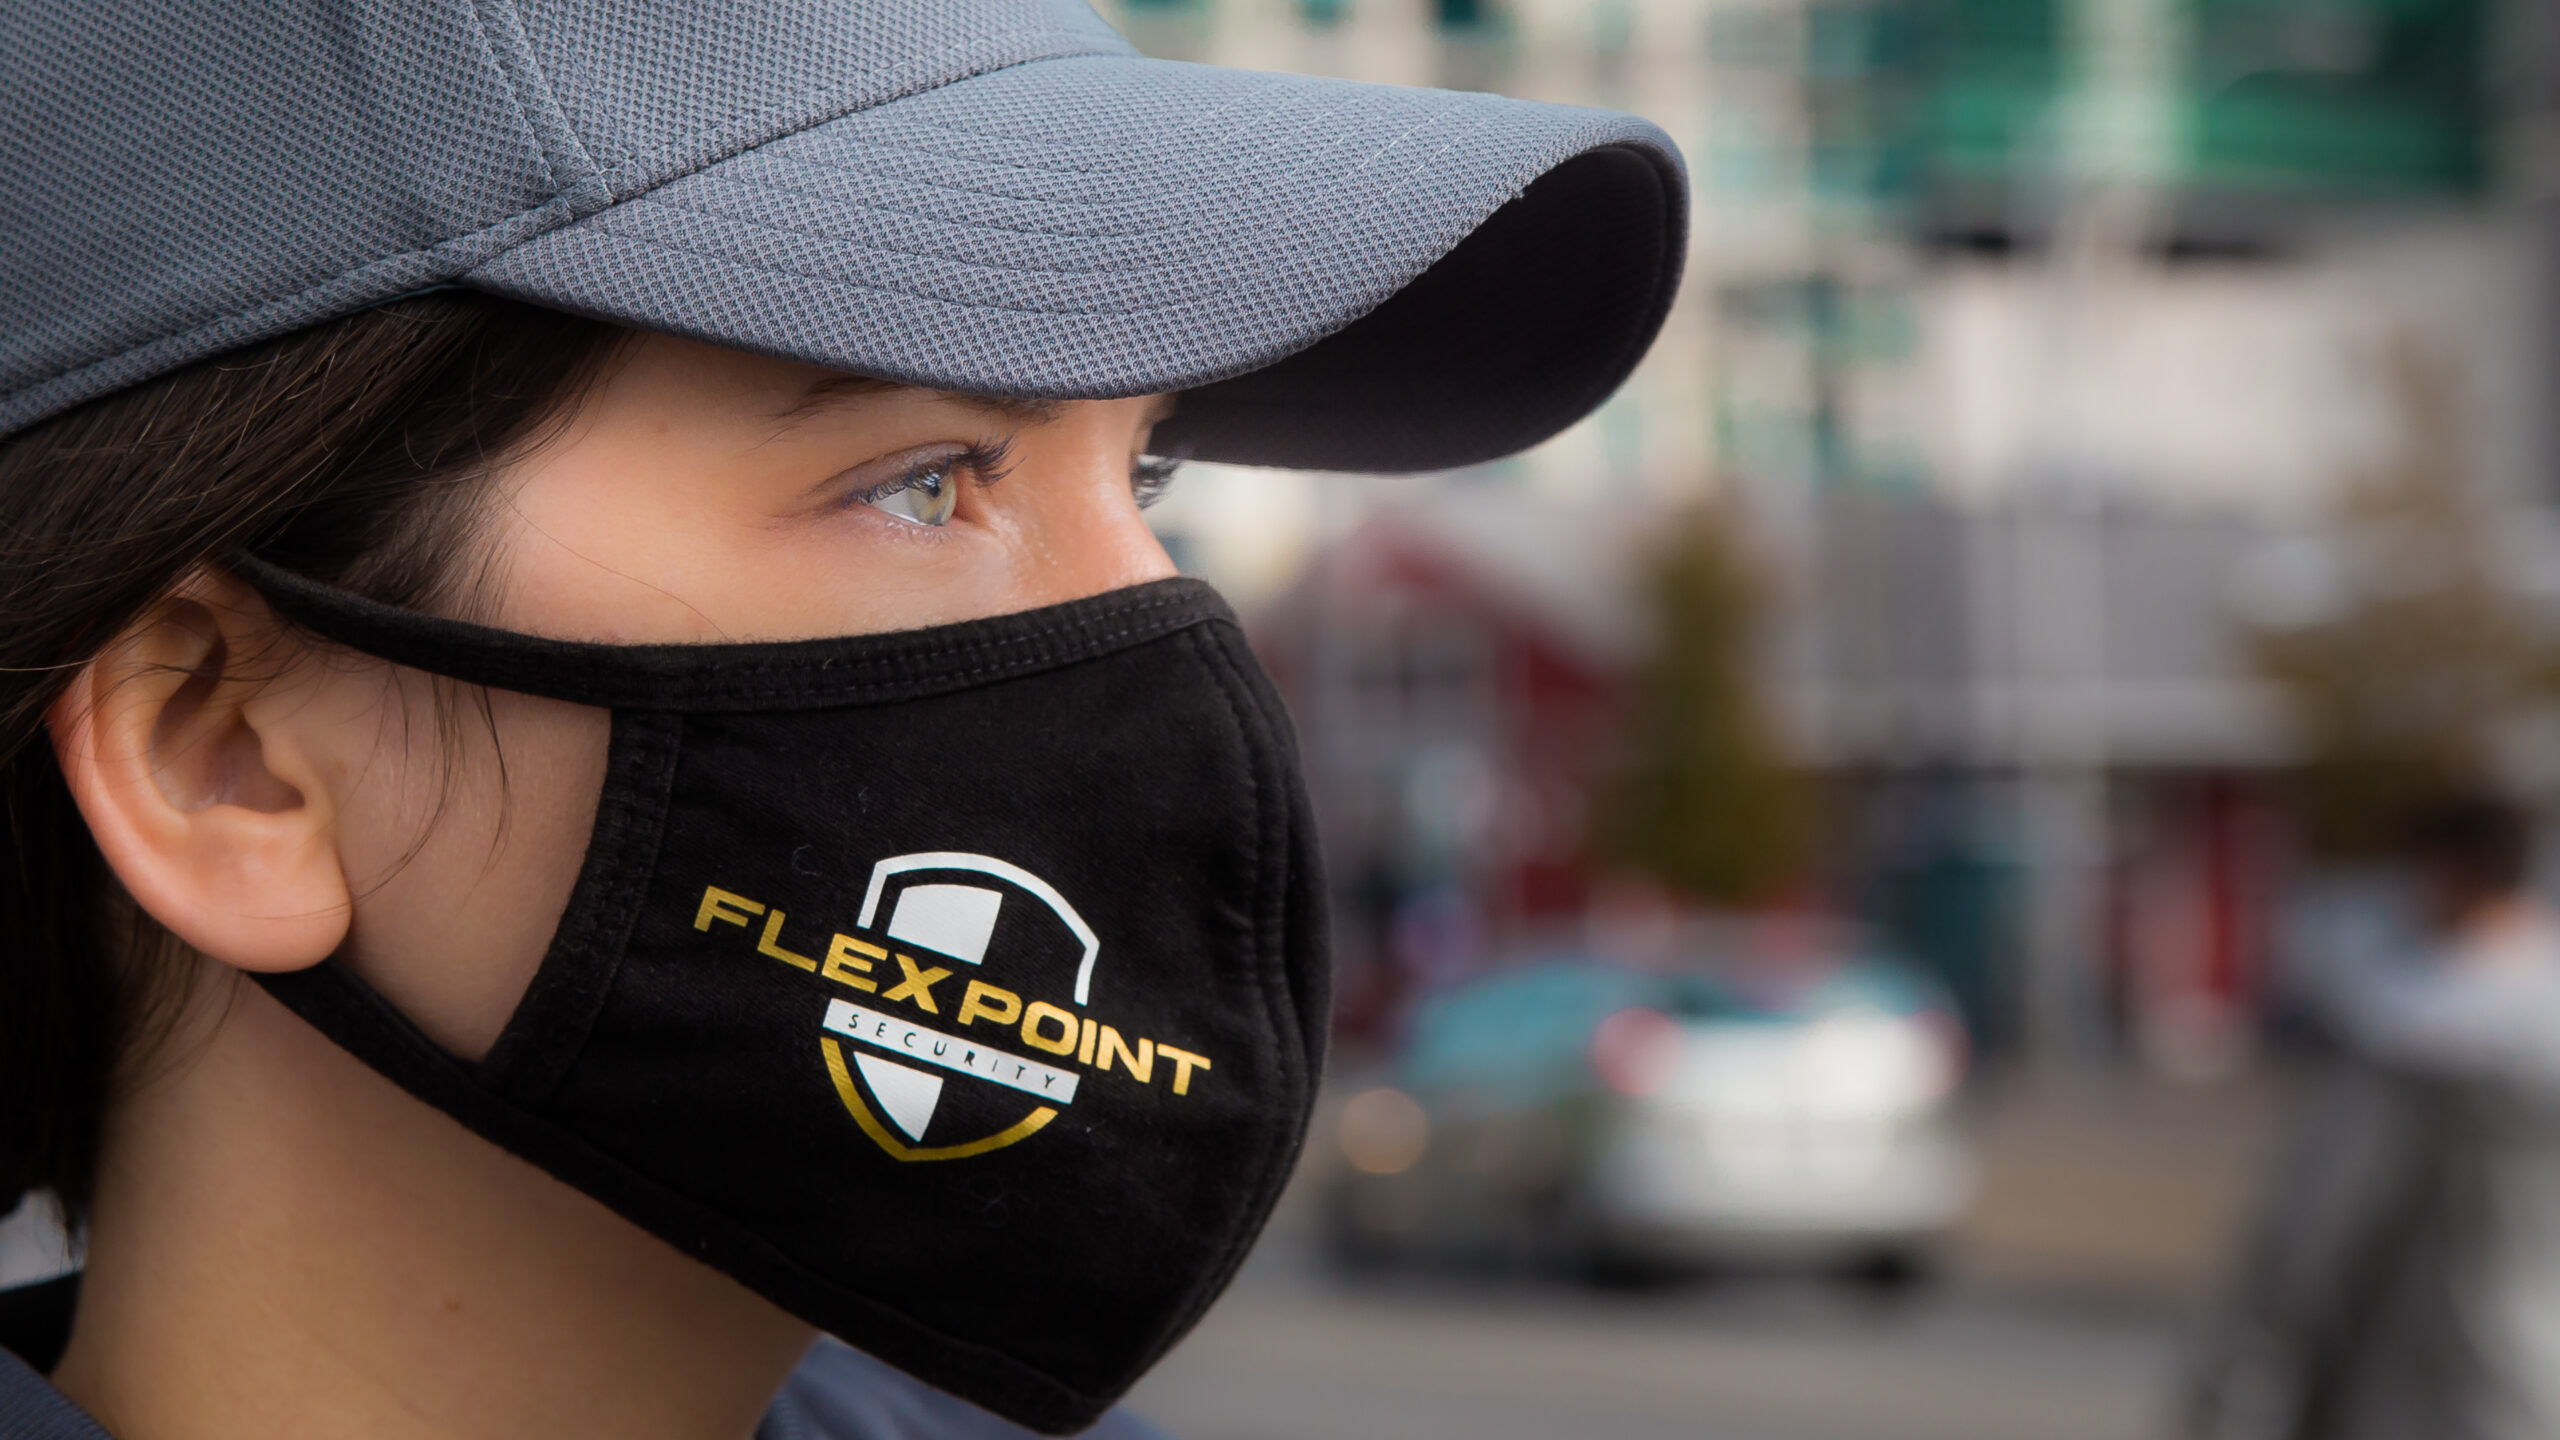 Close up of a female Flex Point Security guard's face as she wears a branded hat and face mask